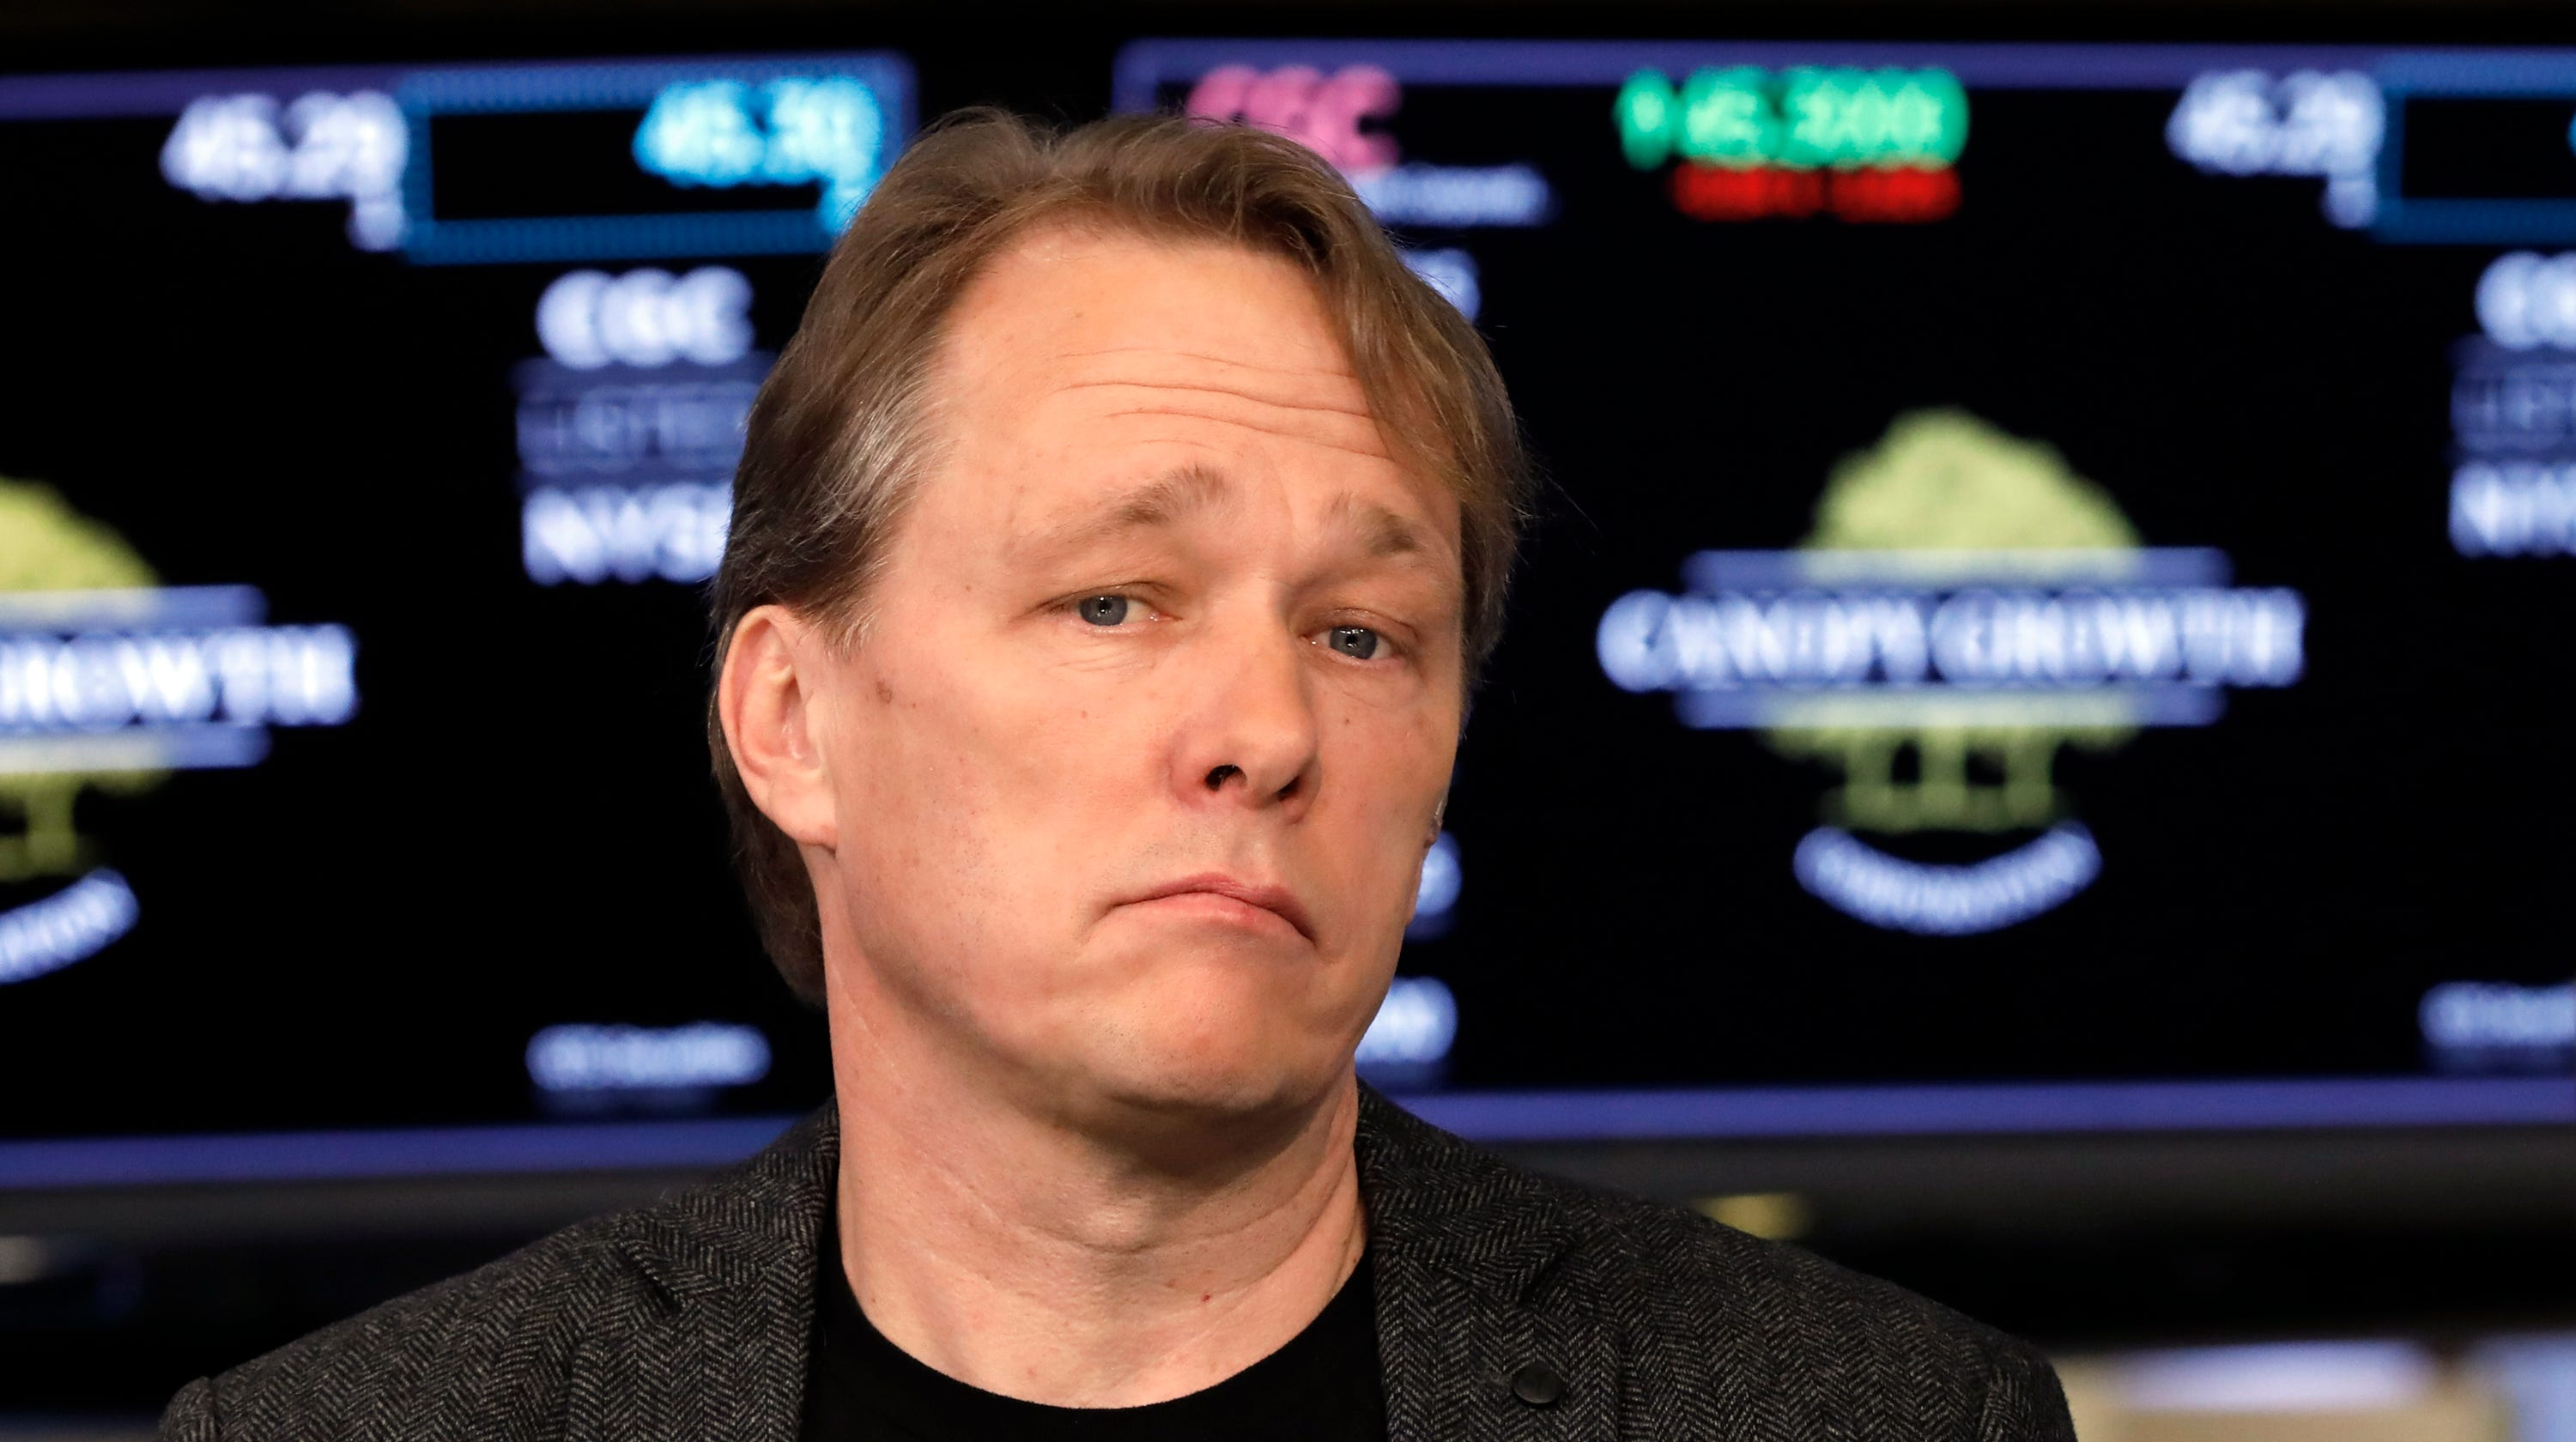 Canopy Growth CEO Bruce Linton told to leave post